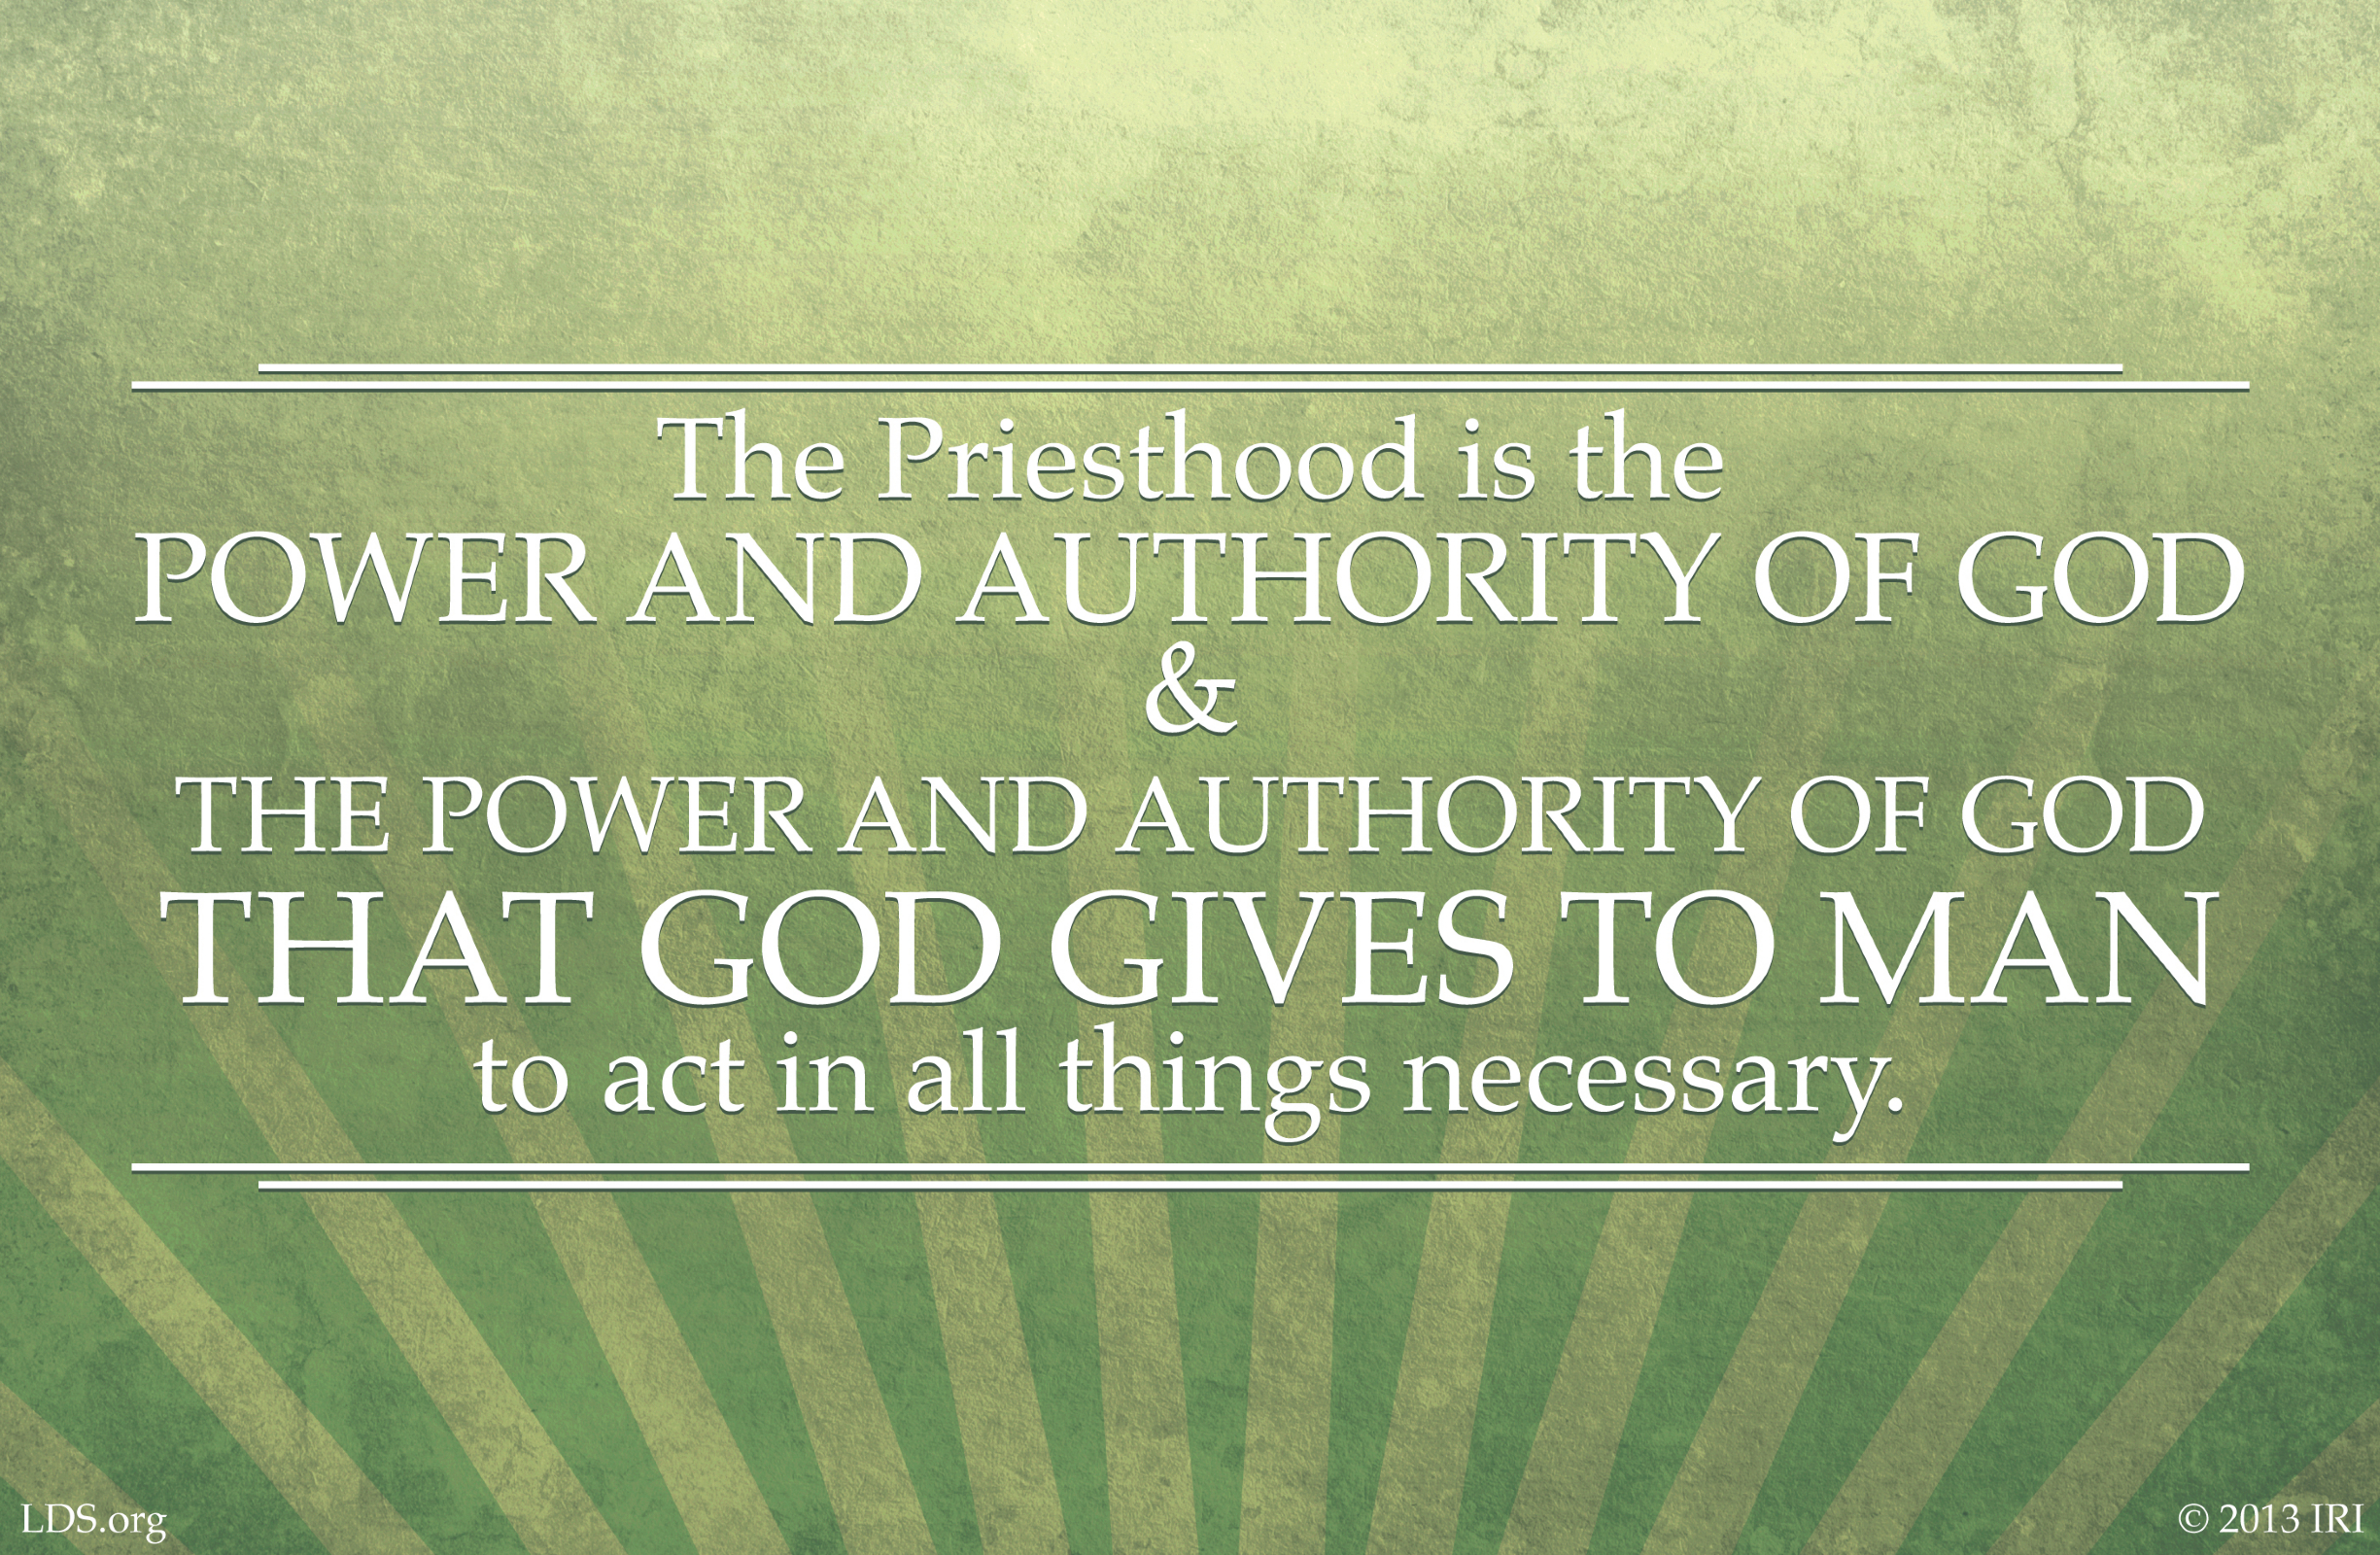 Power and Authority of God